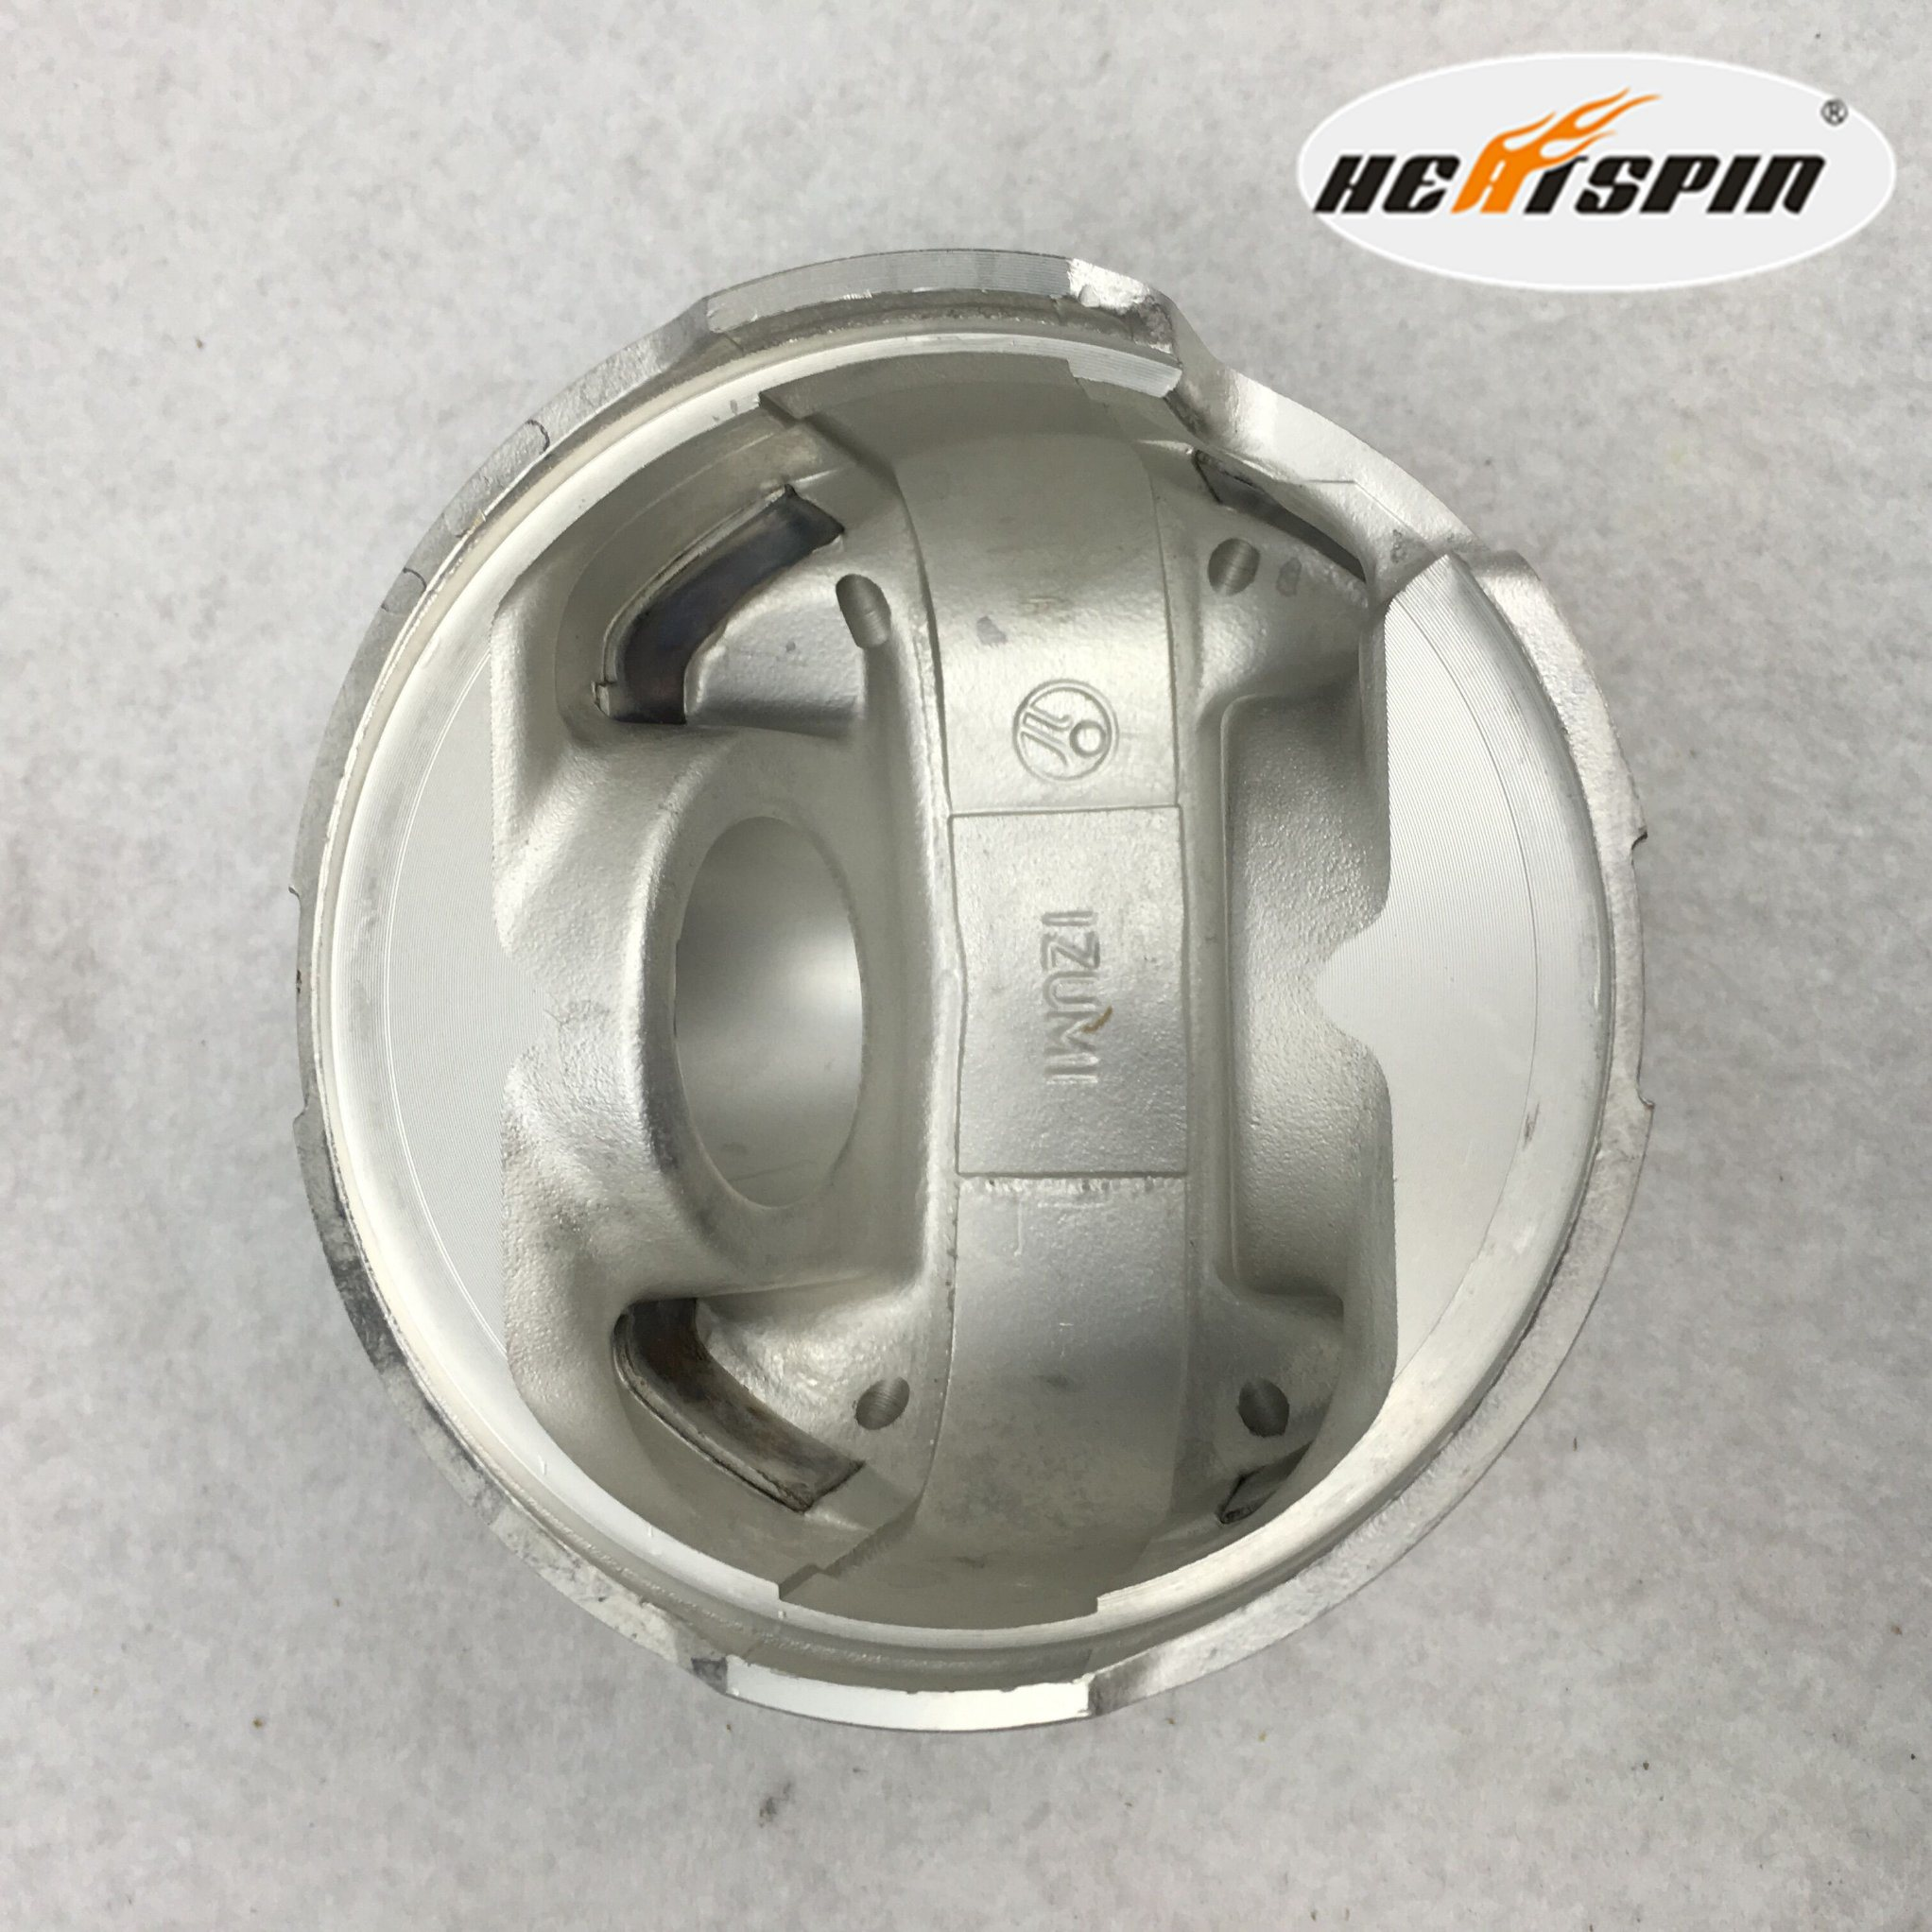 Isuzu 4hf1 Alfin Piston 8-97095-5851/8-97176-6550 with One Year Warranty pictures & photos